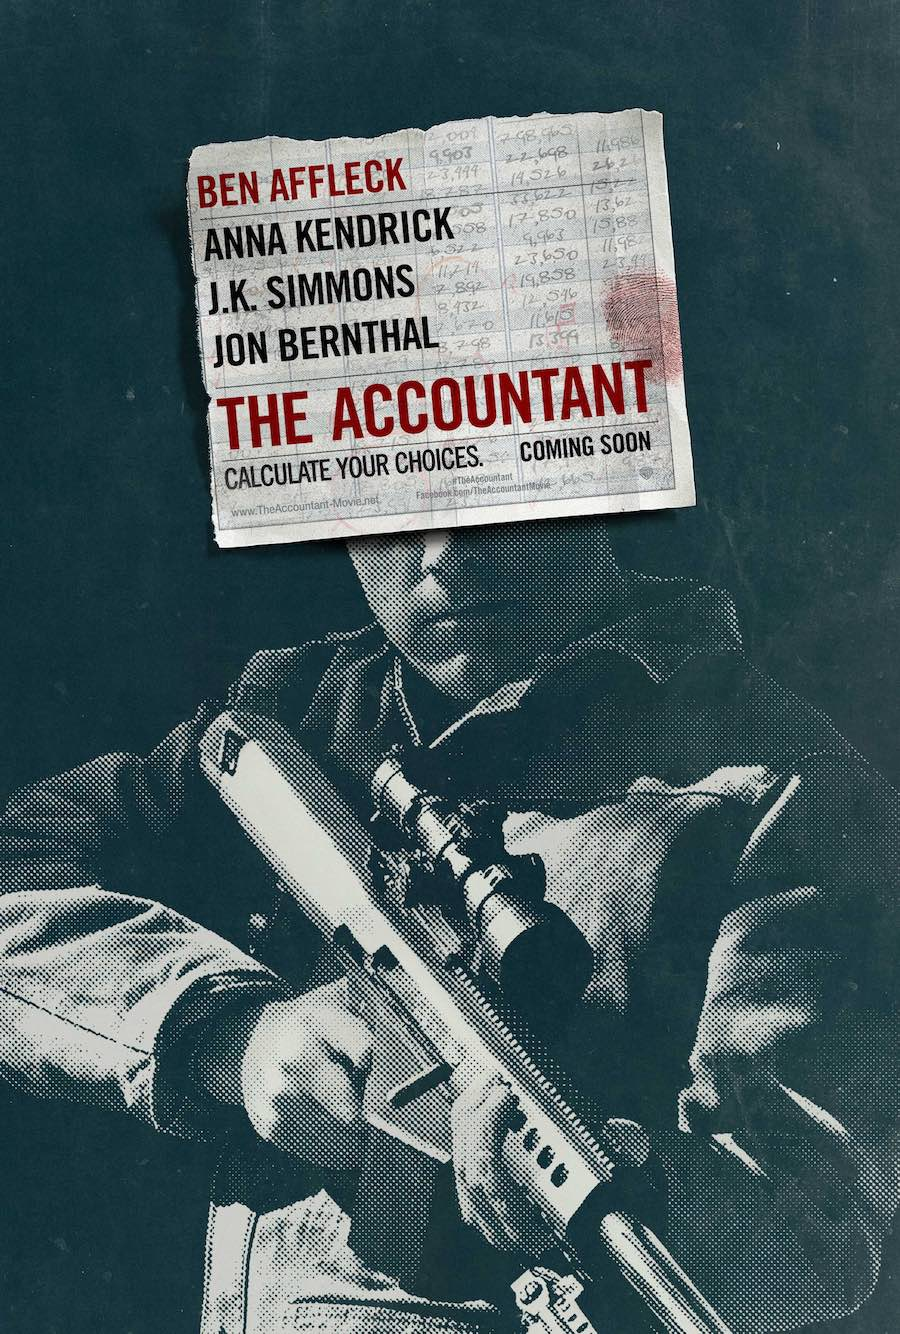 the_accoutant_poster_900